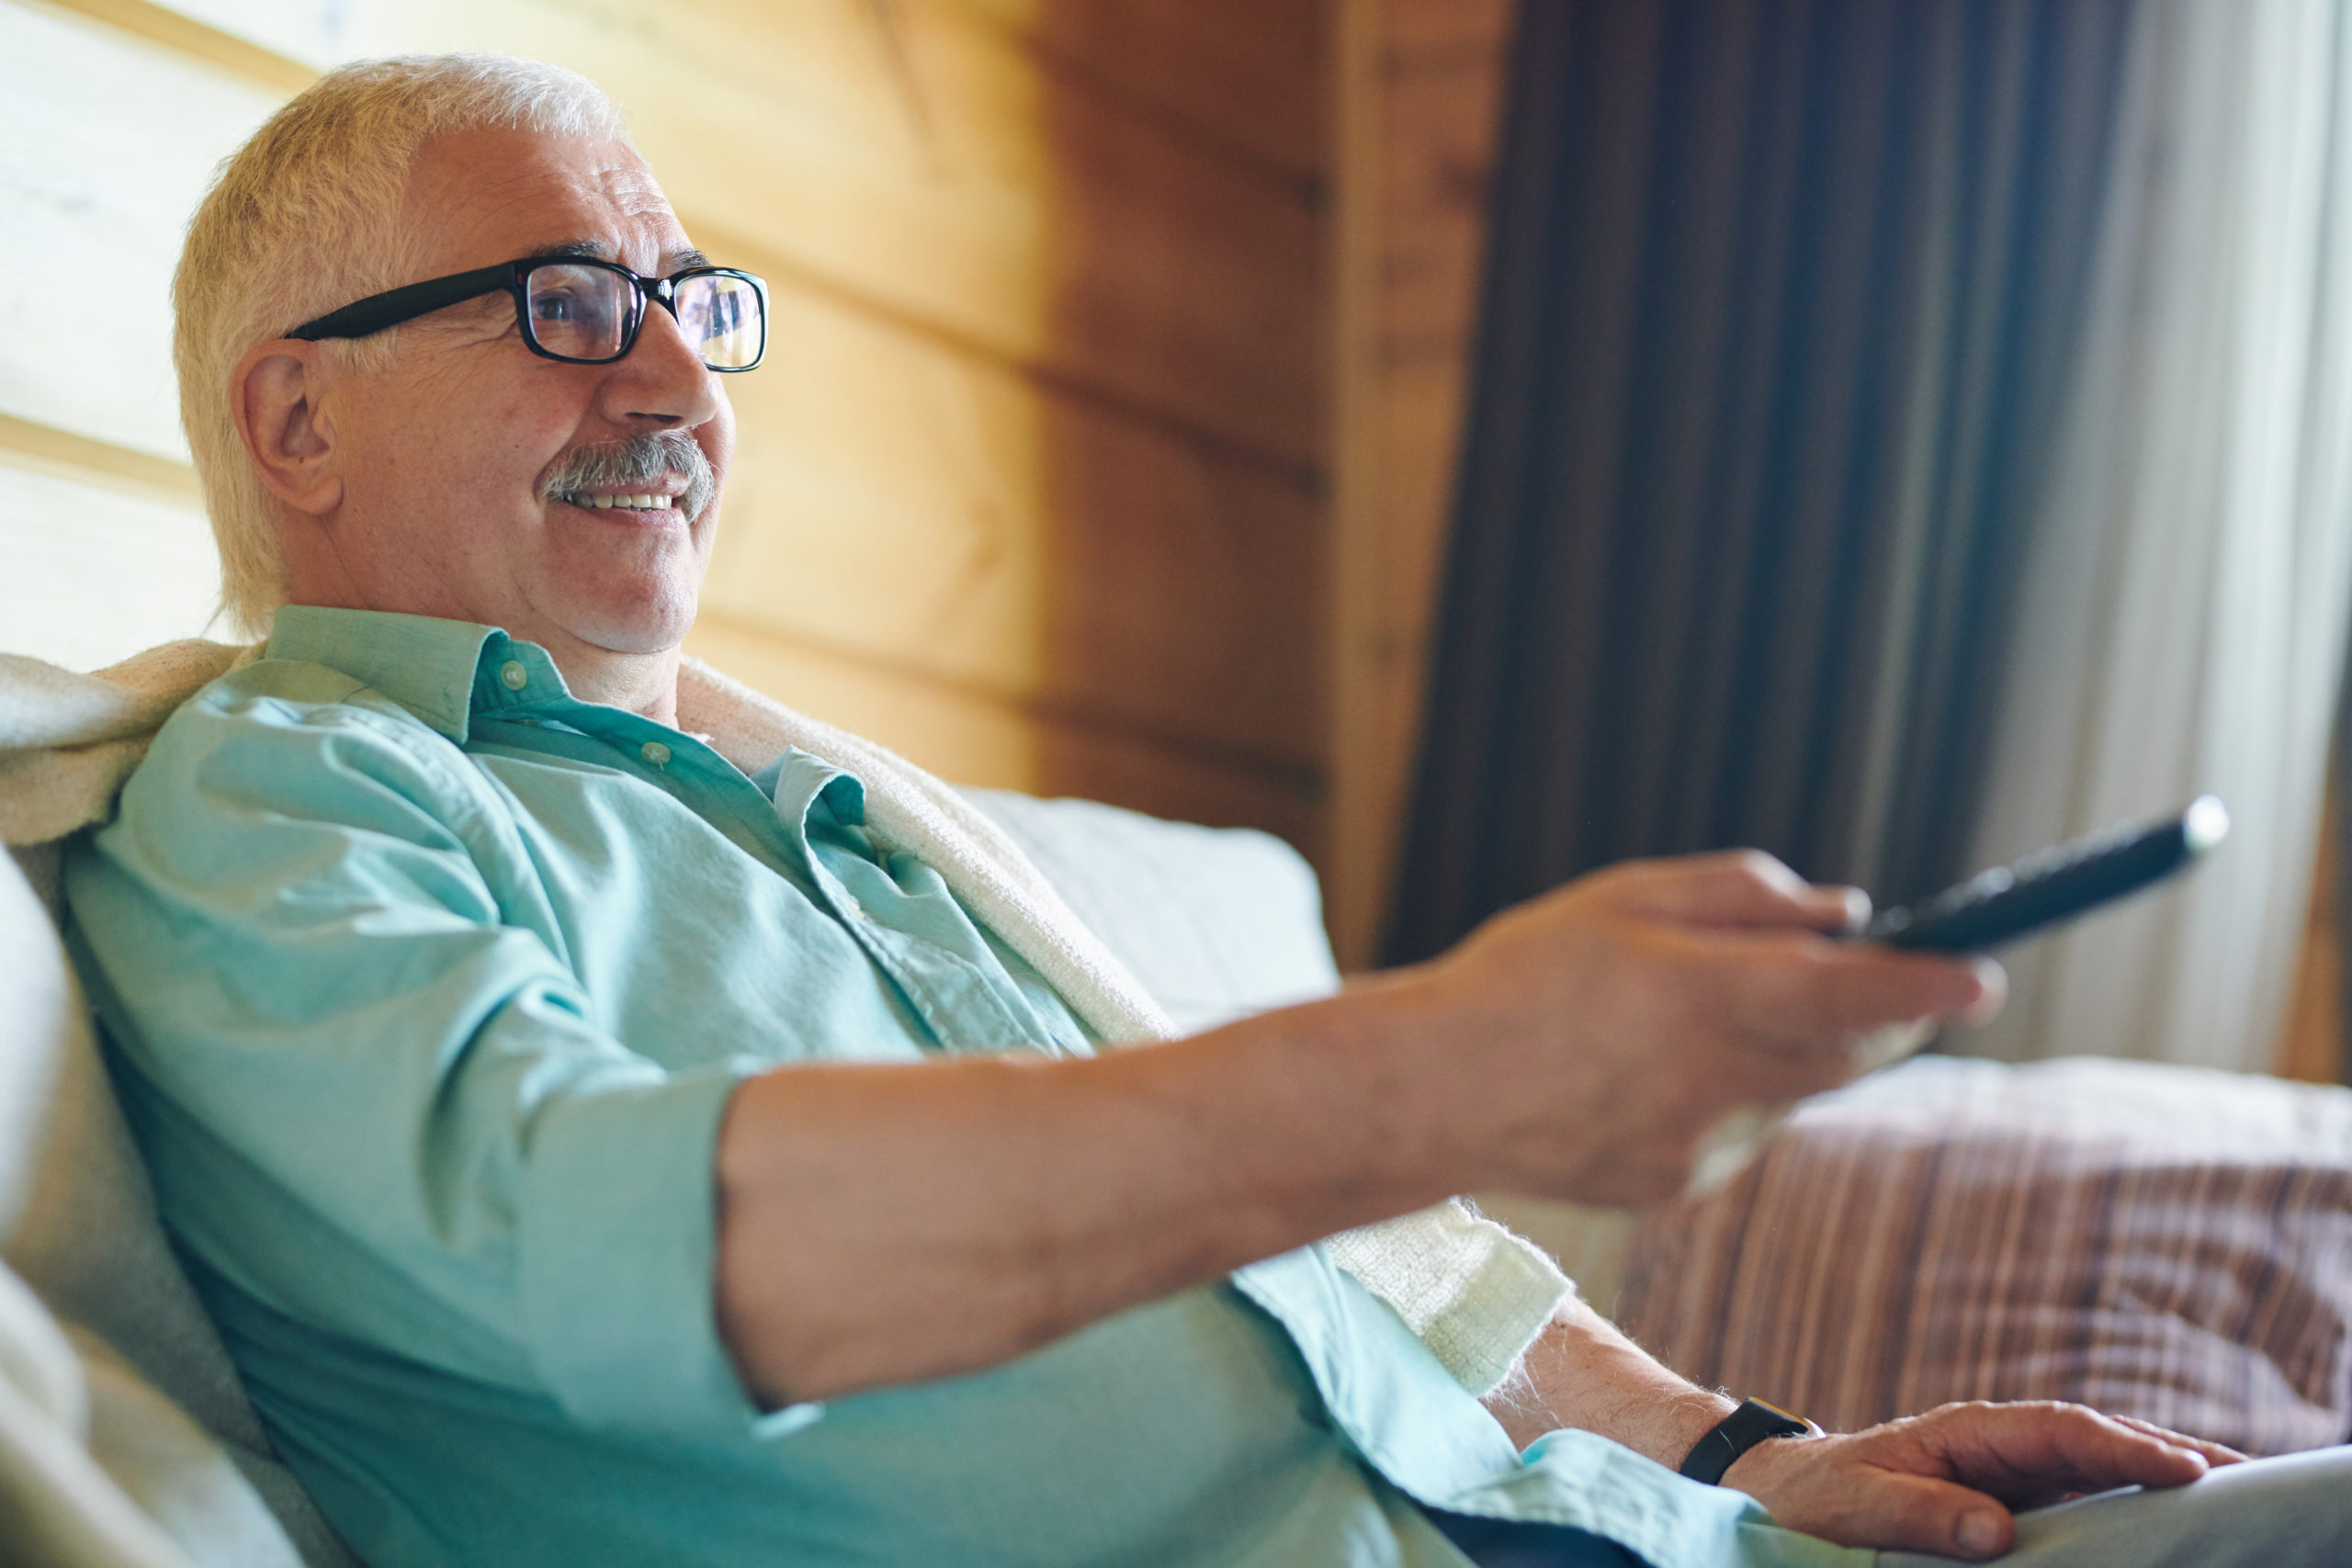 https://elements.envato.com/cheerful-senior-grey-haired-man-in-eyeglasses-and--NTBXY8K